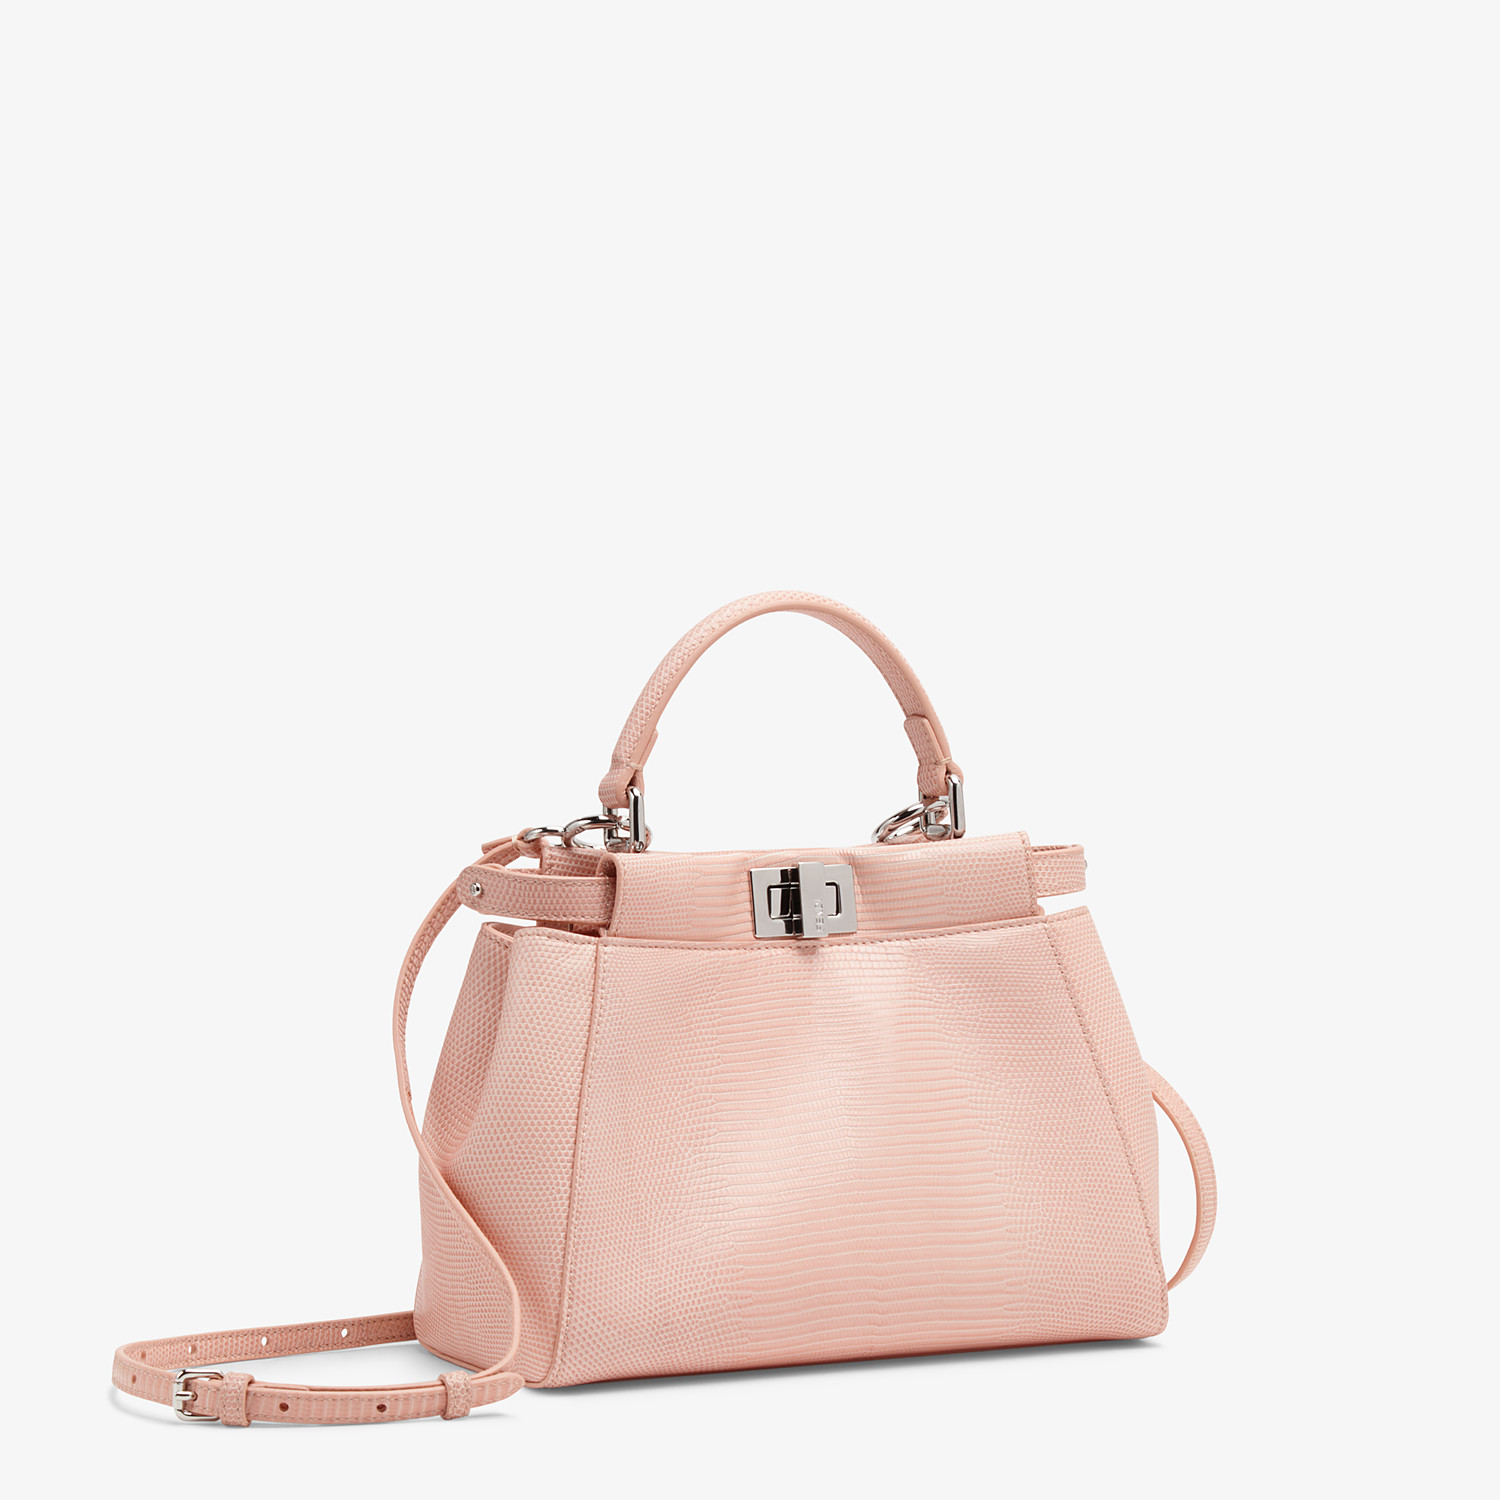 FENDI PEEKABOO ICONIC MINI - Pink lizard skin bag - view 2 detail